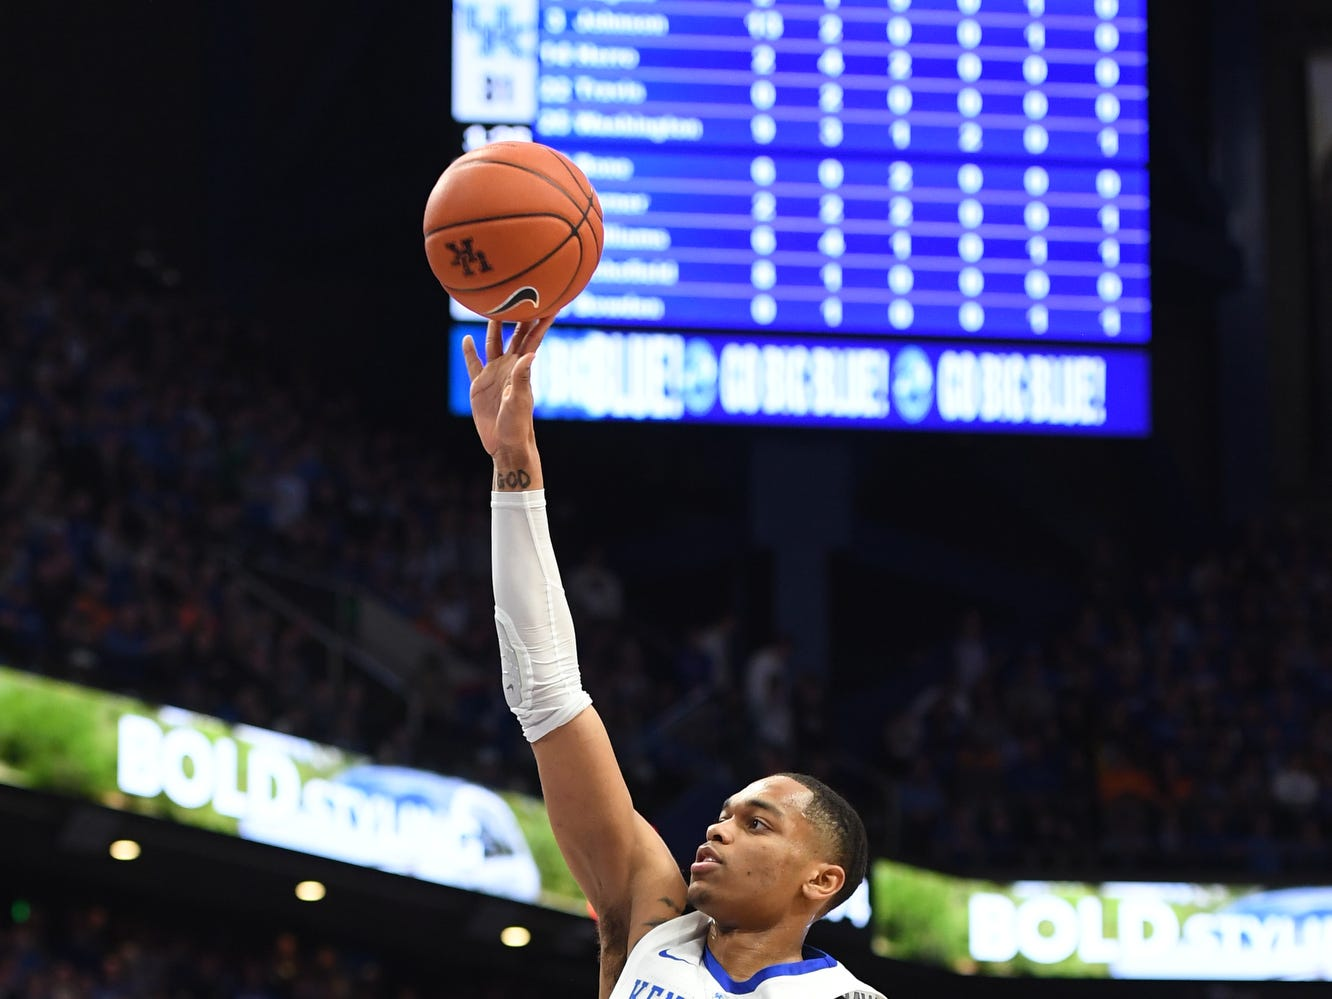 UK F PJ Washington shoots during the University of Kentucky mens basketball game against Tennessee at Rupp Arena in Lexington, Kentucky on Saturday, February 16, 2019.